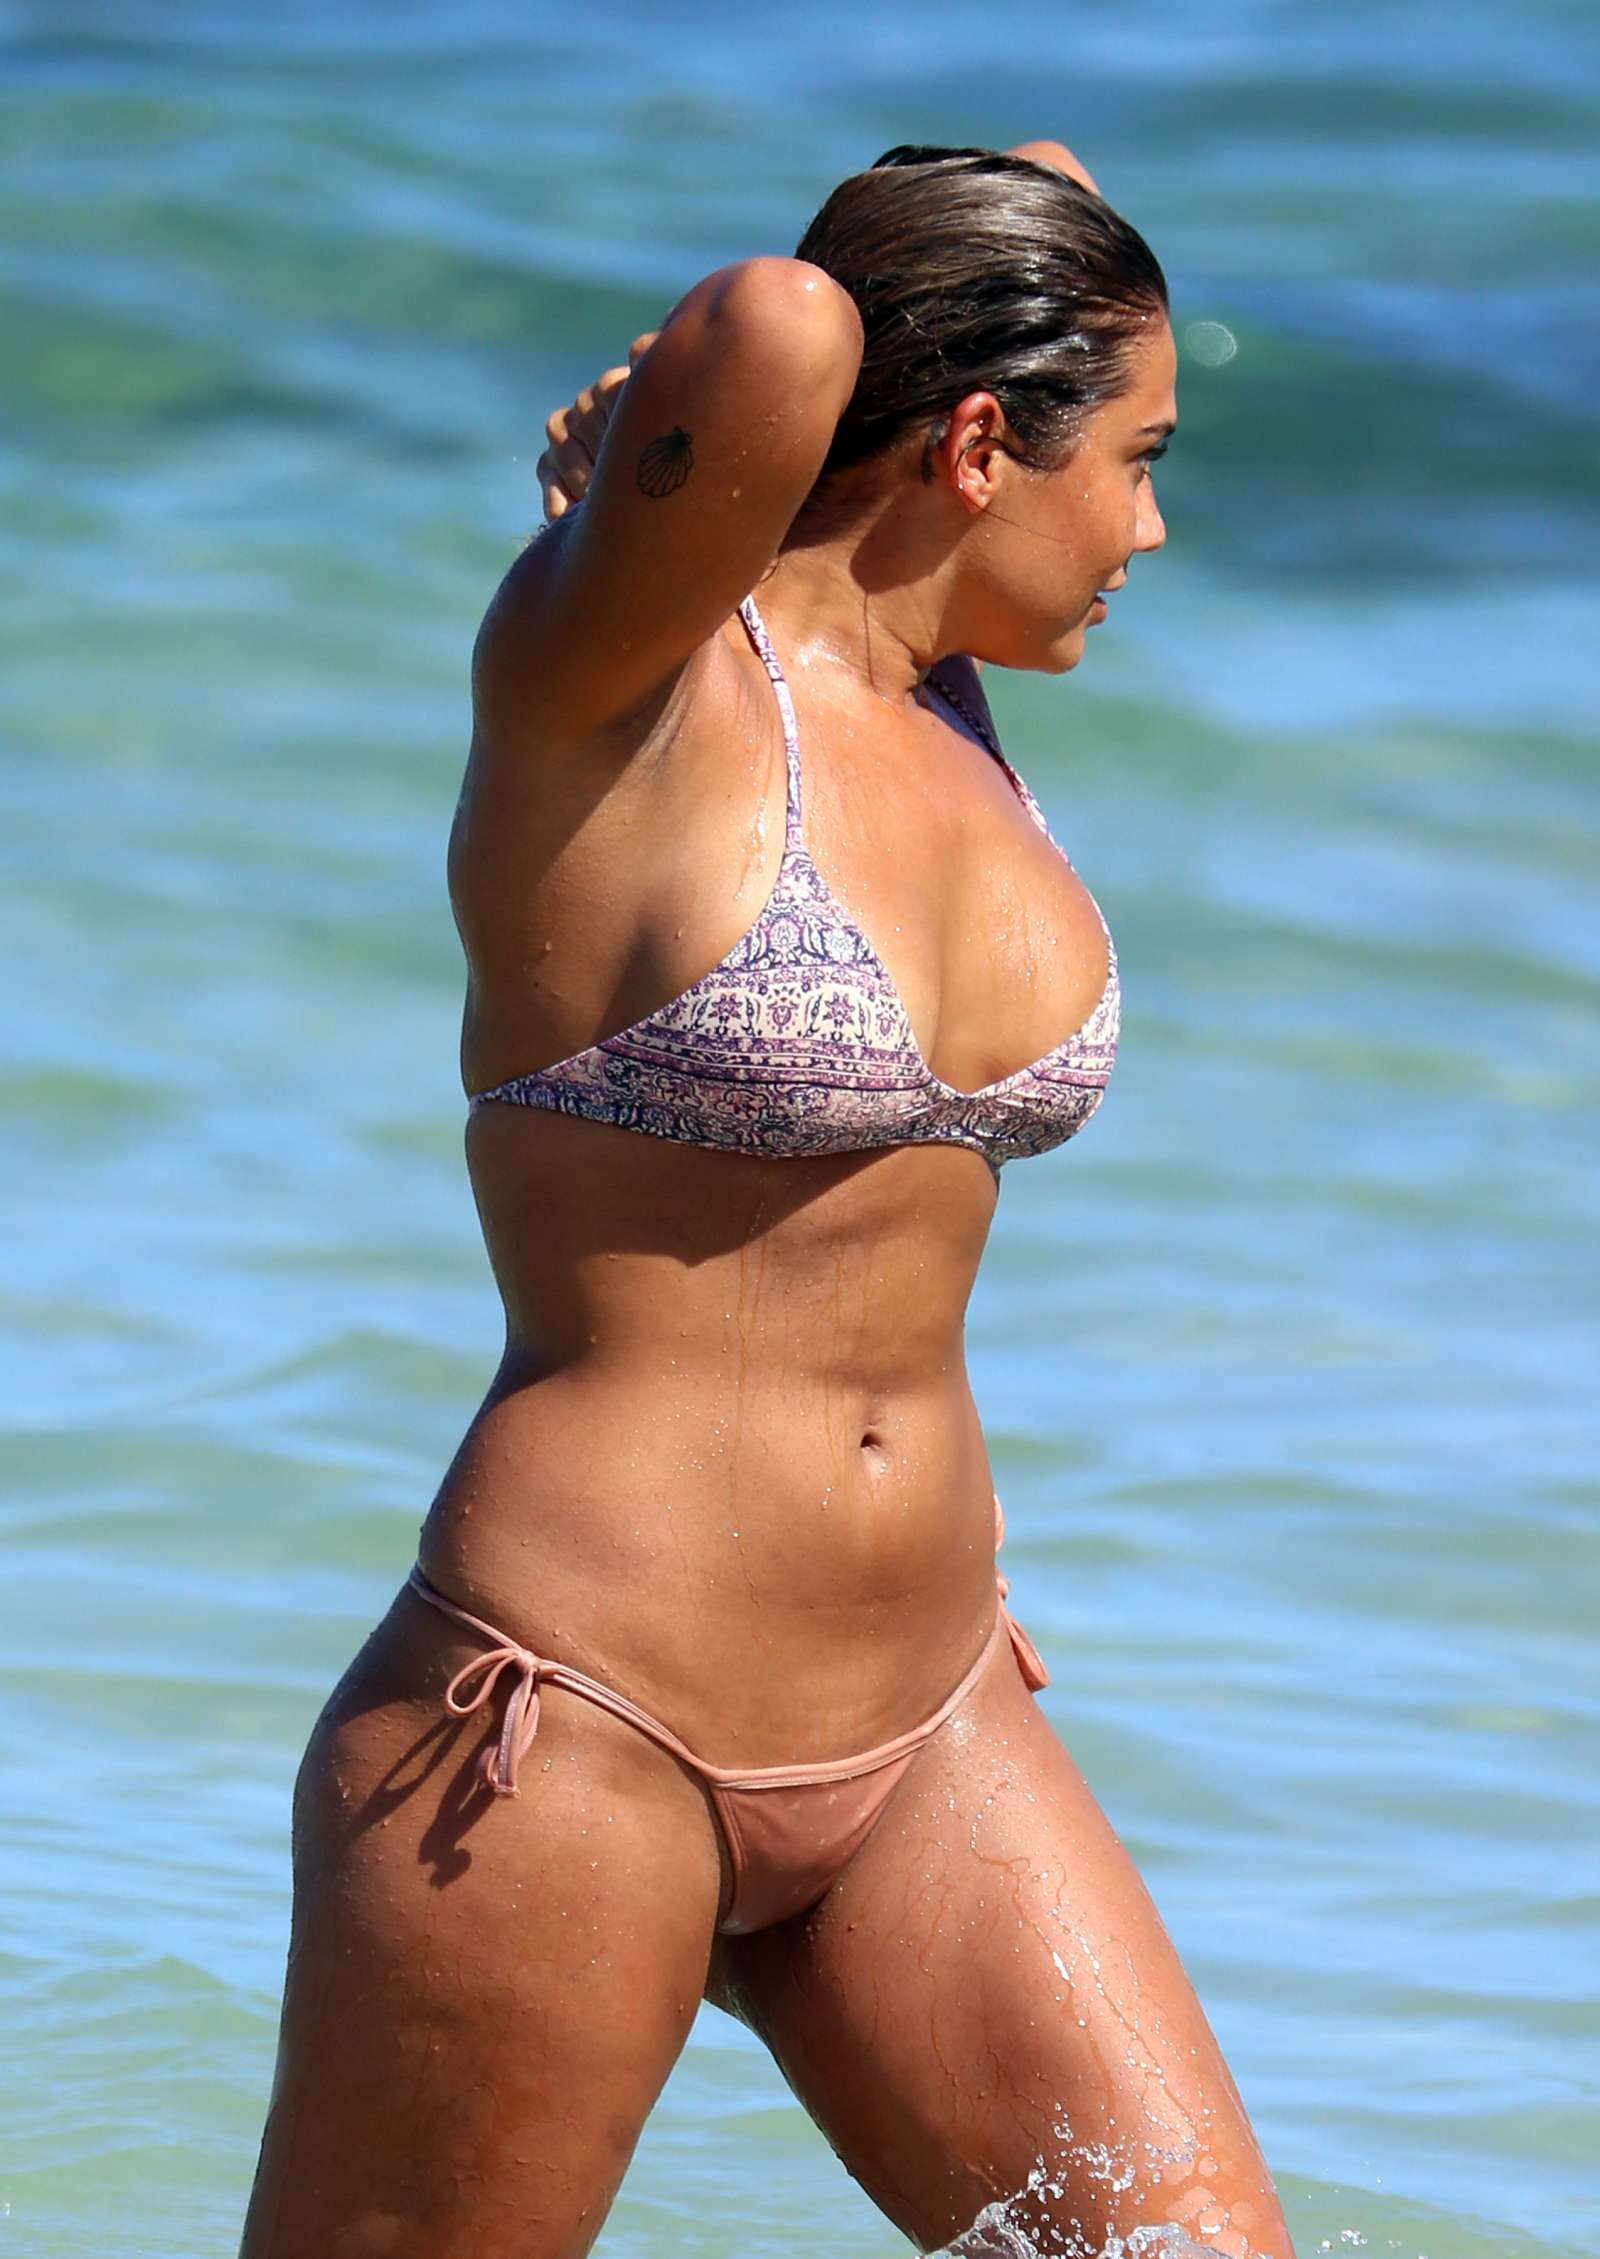 Noni Janur in Bikini at Bondi Beach - photo#41